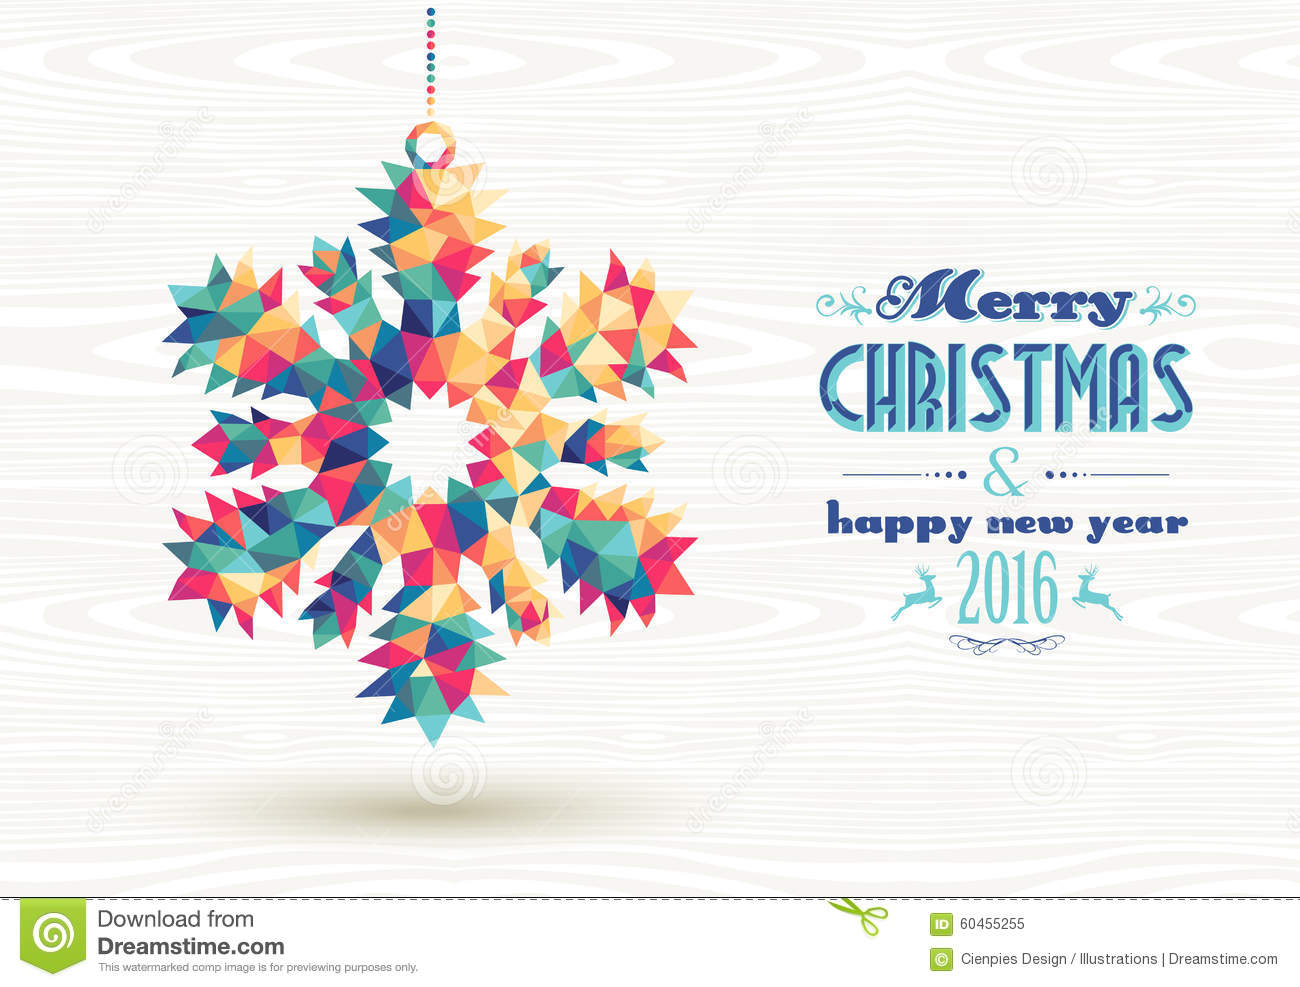 Merry Christmas Happy New Year 2016 Triangle Snow Stock